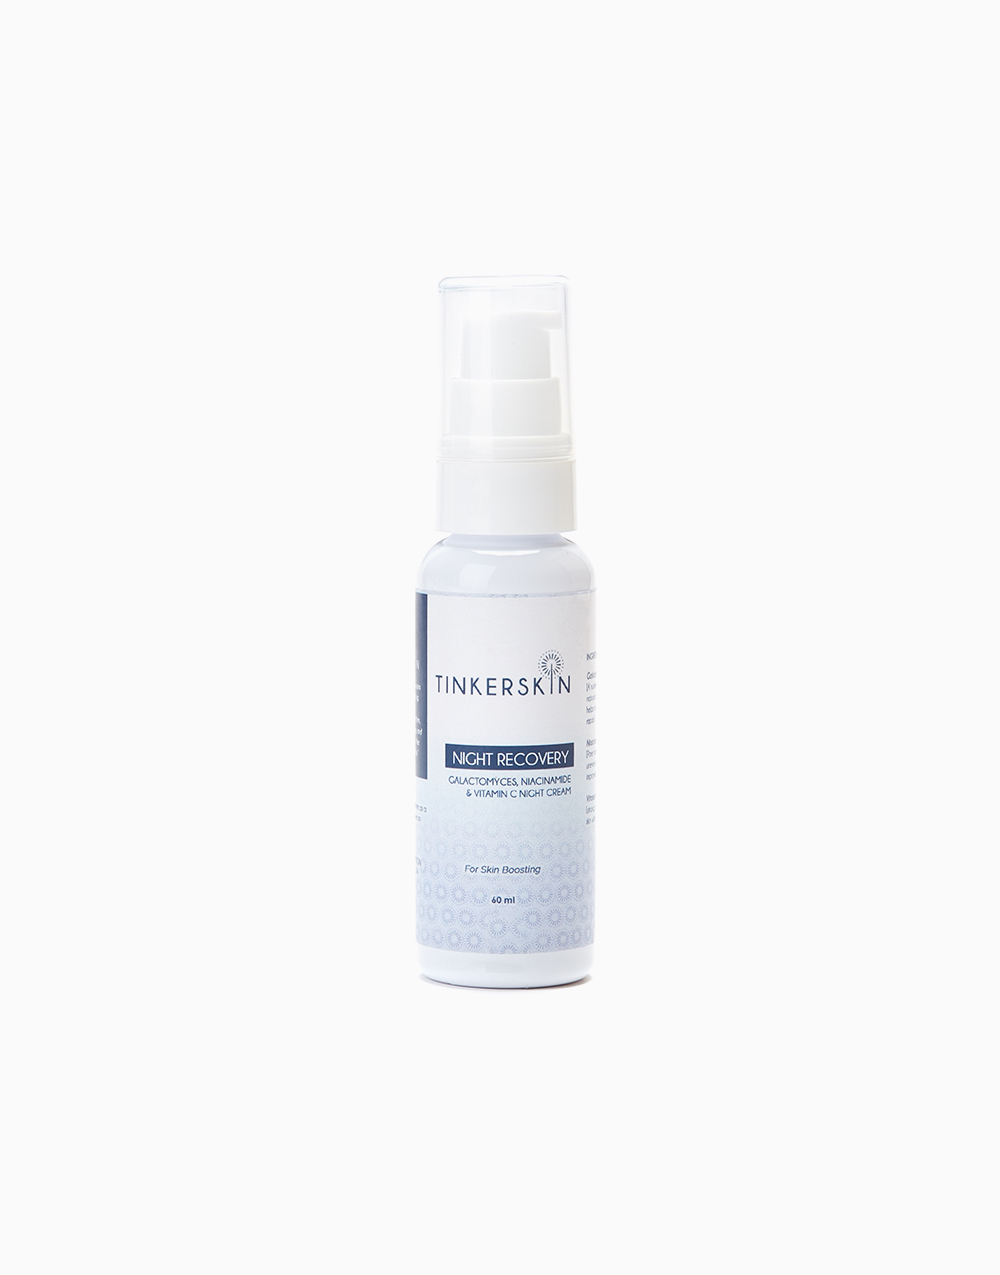 Galactomyces + Niacinamide + Vitamin C Night Recovery Cream by Tinkerskin